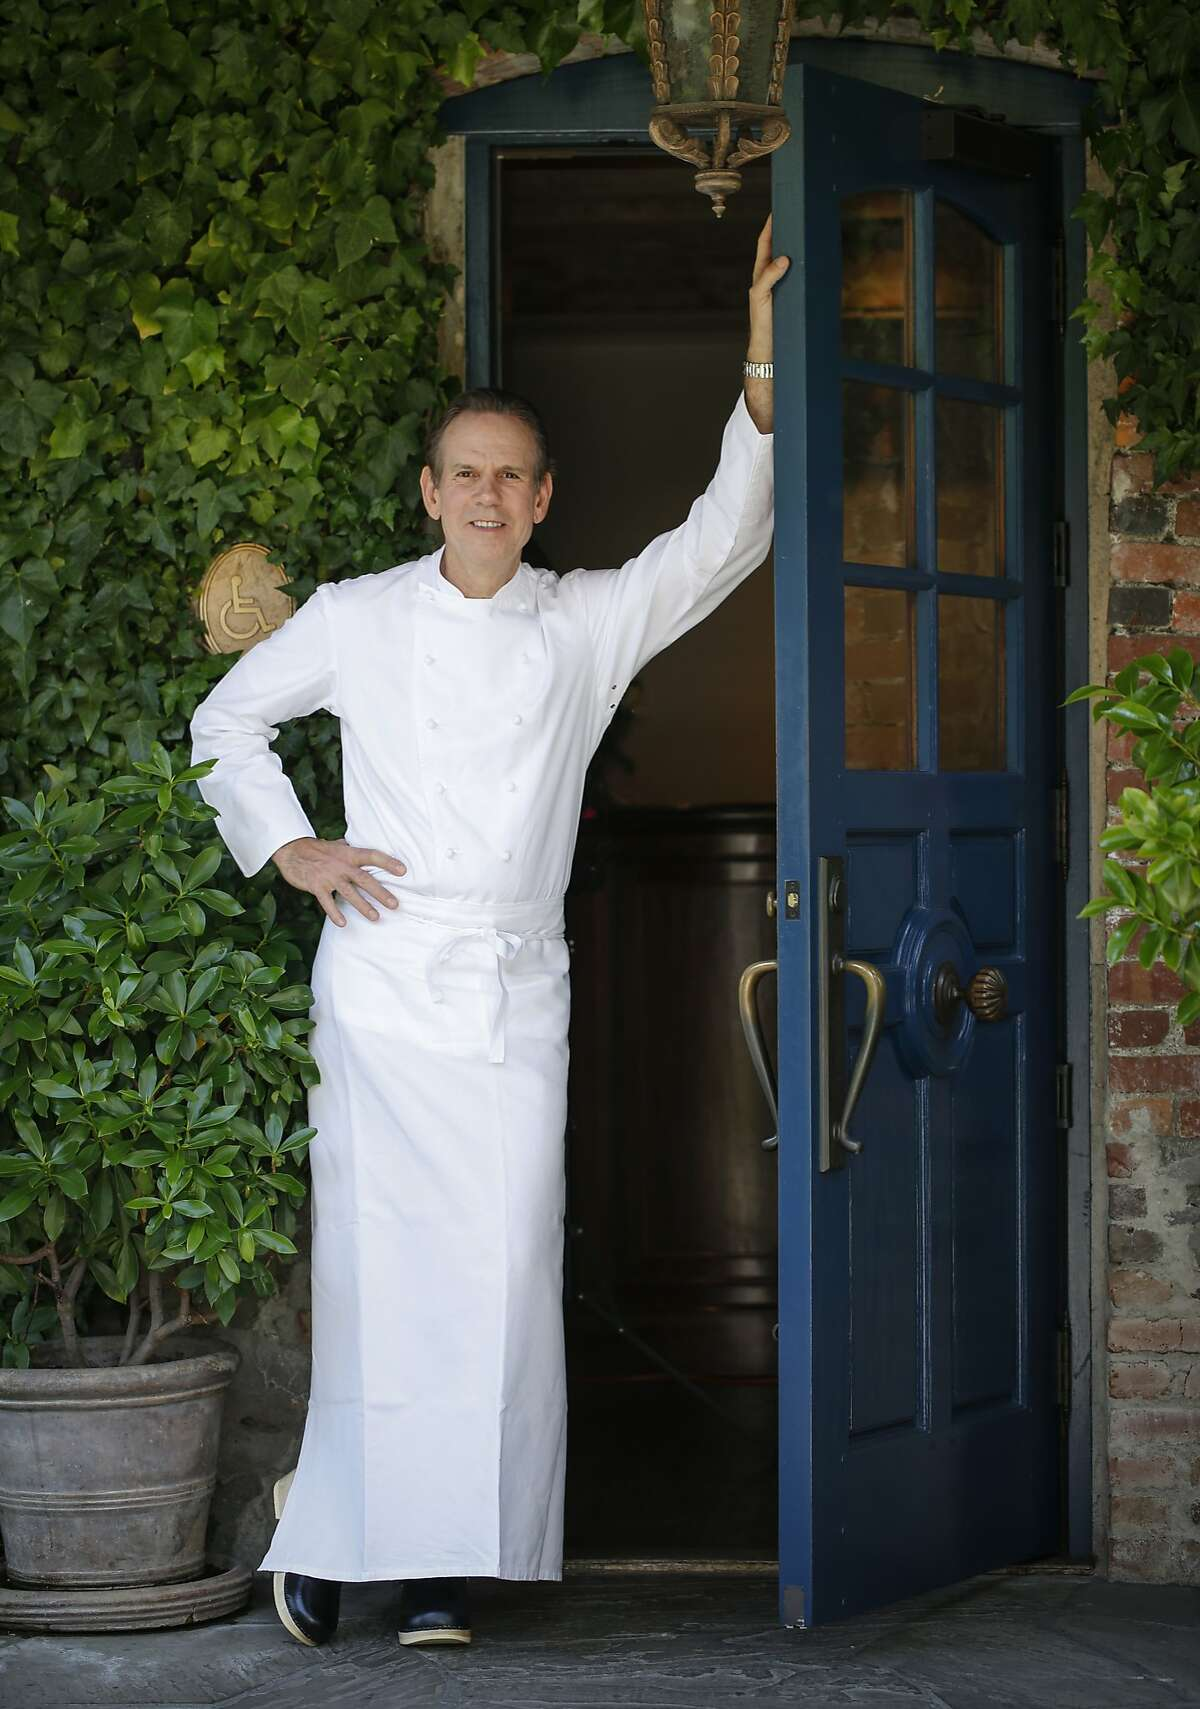 Chef Thomas Keller stands in the doorway of The French Laundry on Wednesday, April 16, 2014 in Yountville, Calif. The renowned chef recently purchased a property in Napa, near his award-winning restaurant. Click through the gallery to see photos of the 2-acre property.